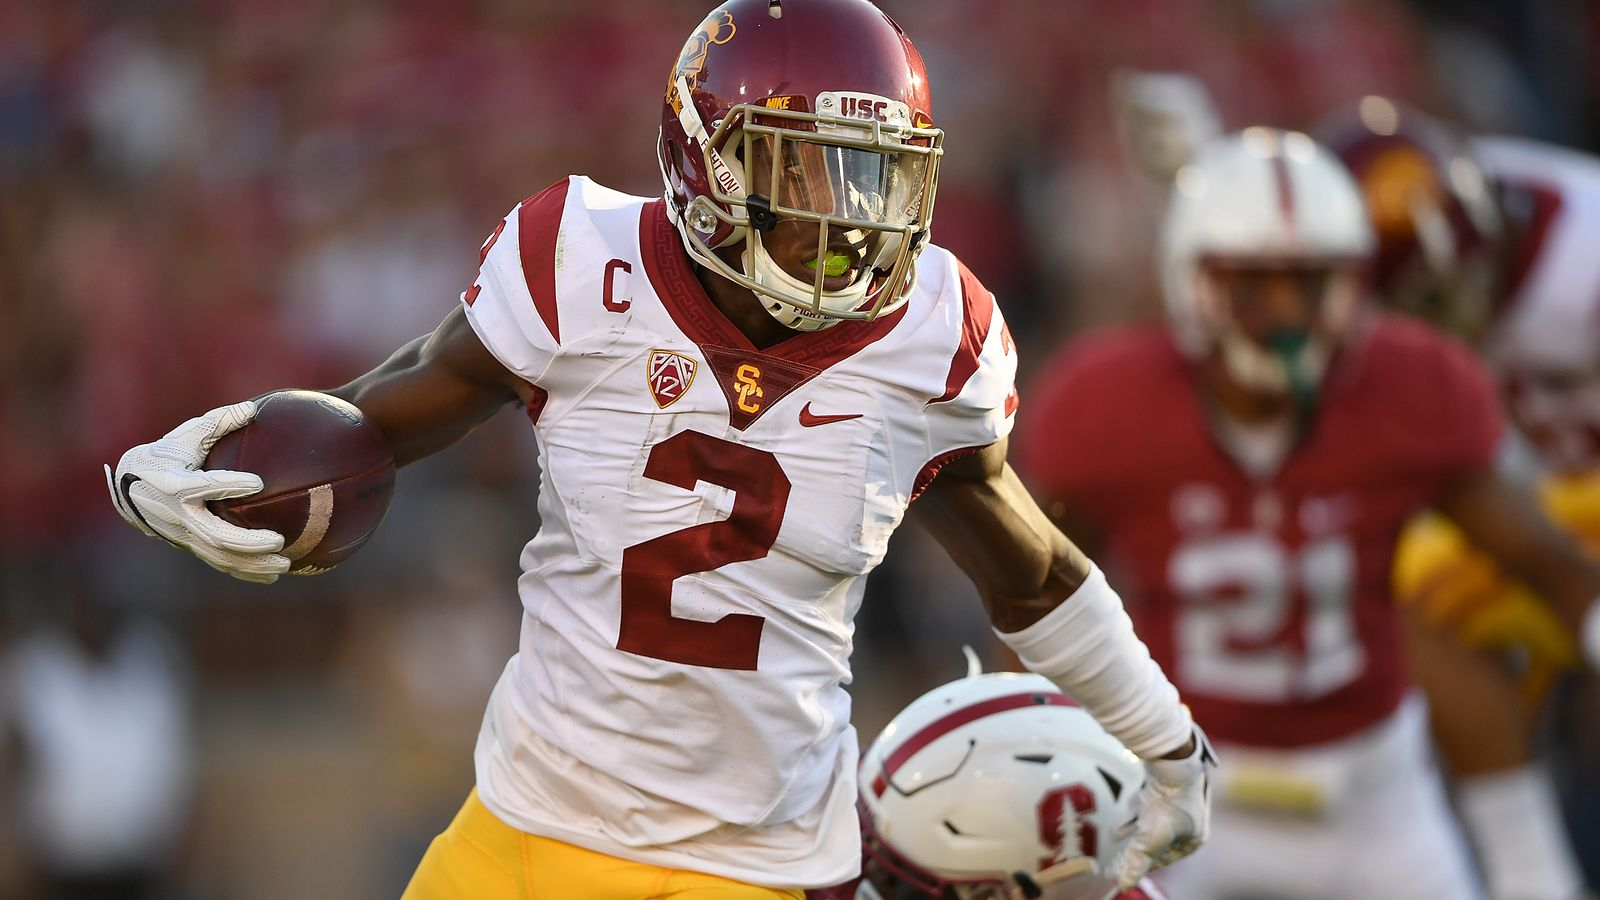 ASU Football: USC Players to Watch - House of Sparky